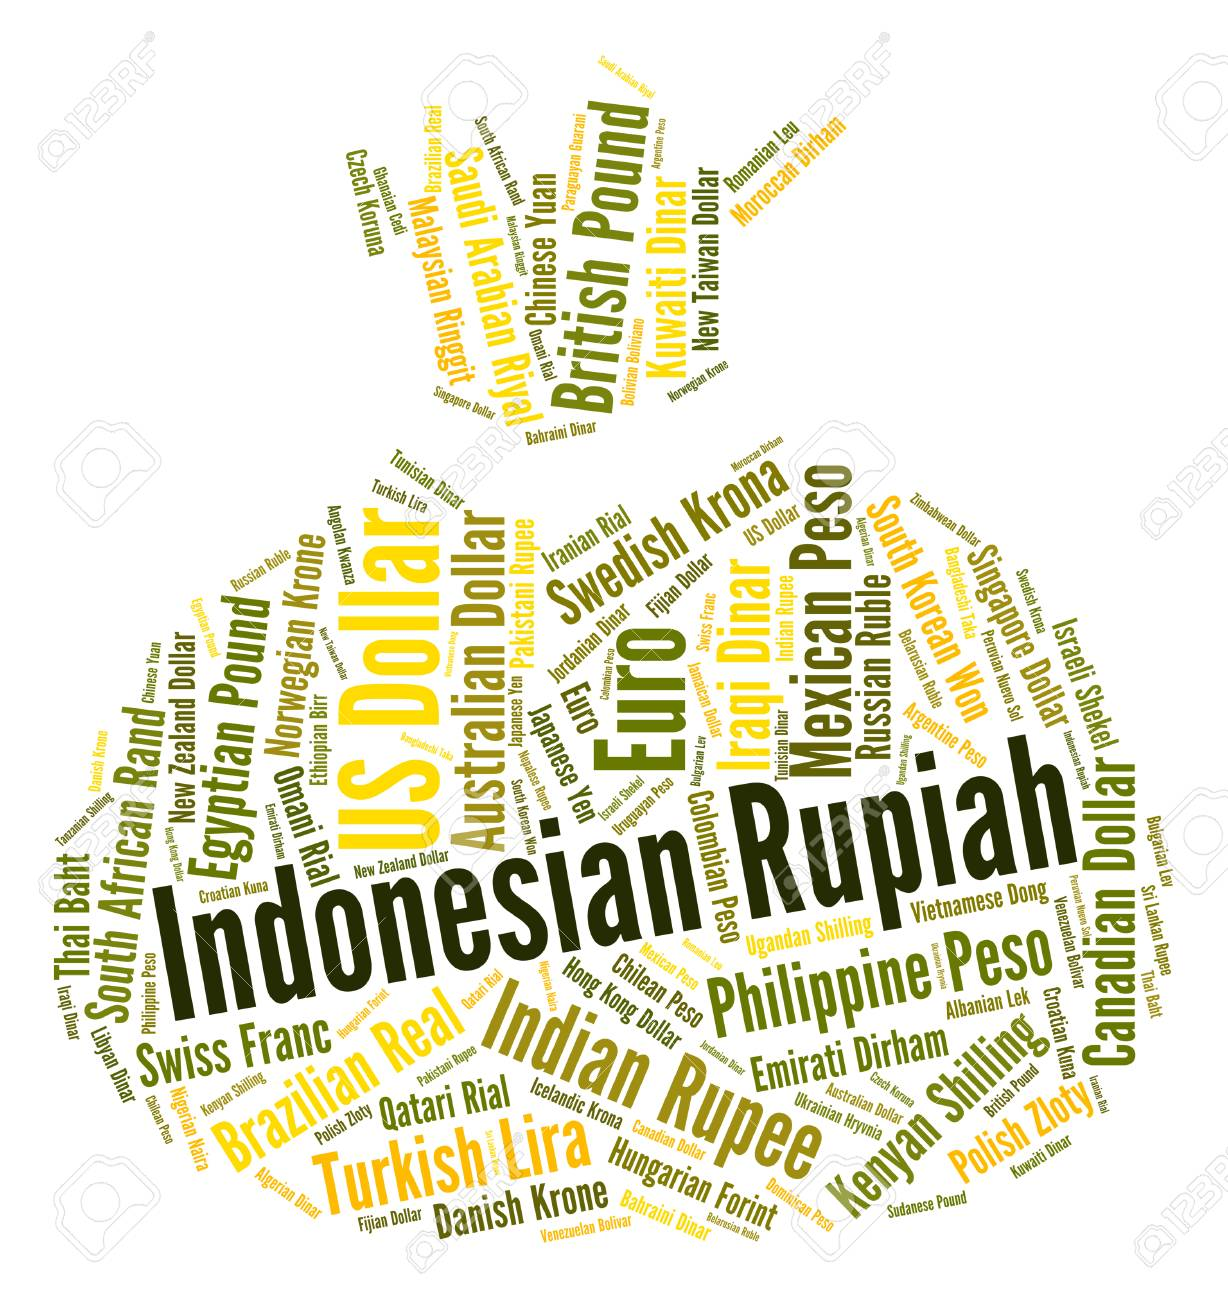 Indonesian Rupiah Showing Exchange Rate And Market Stock Photo